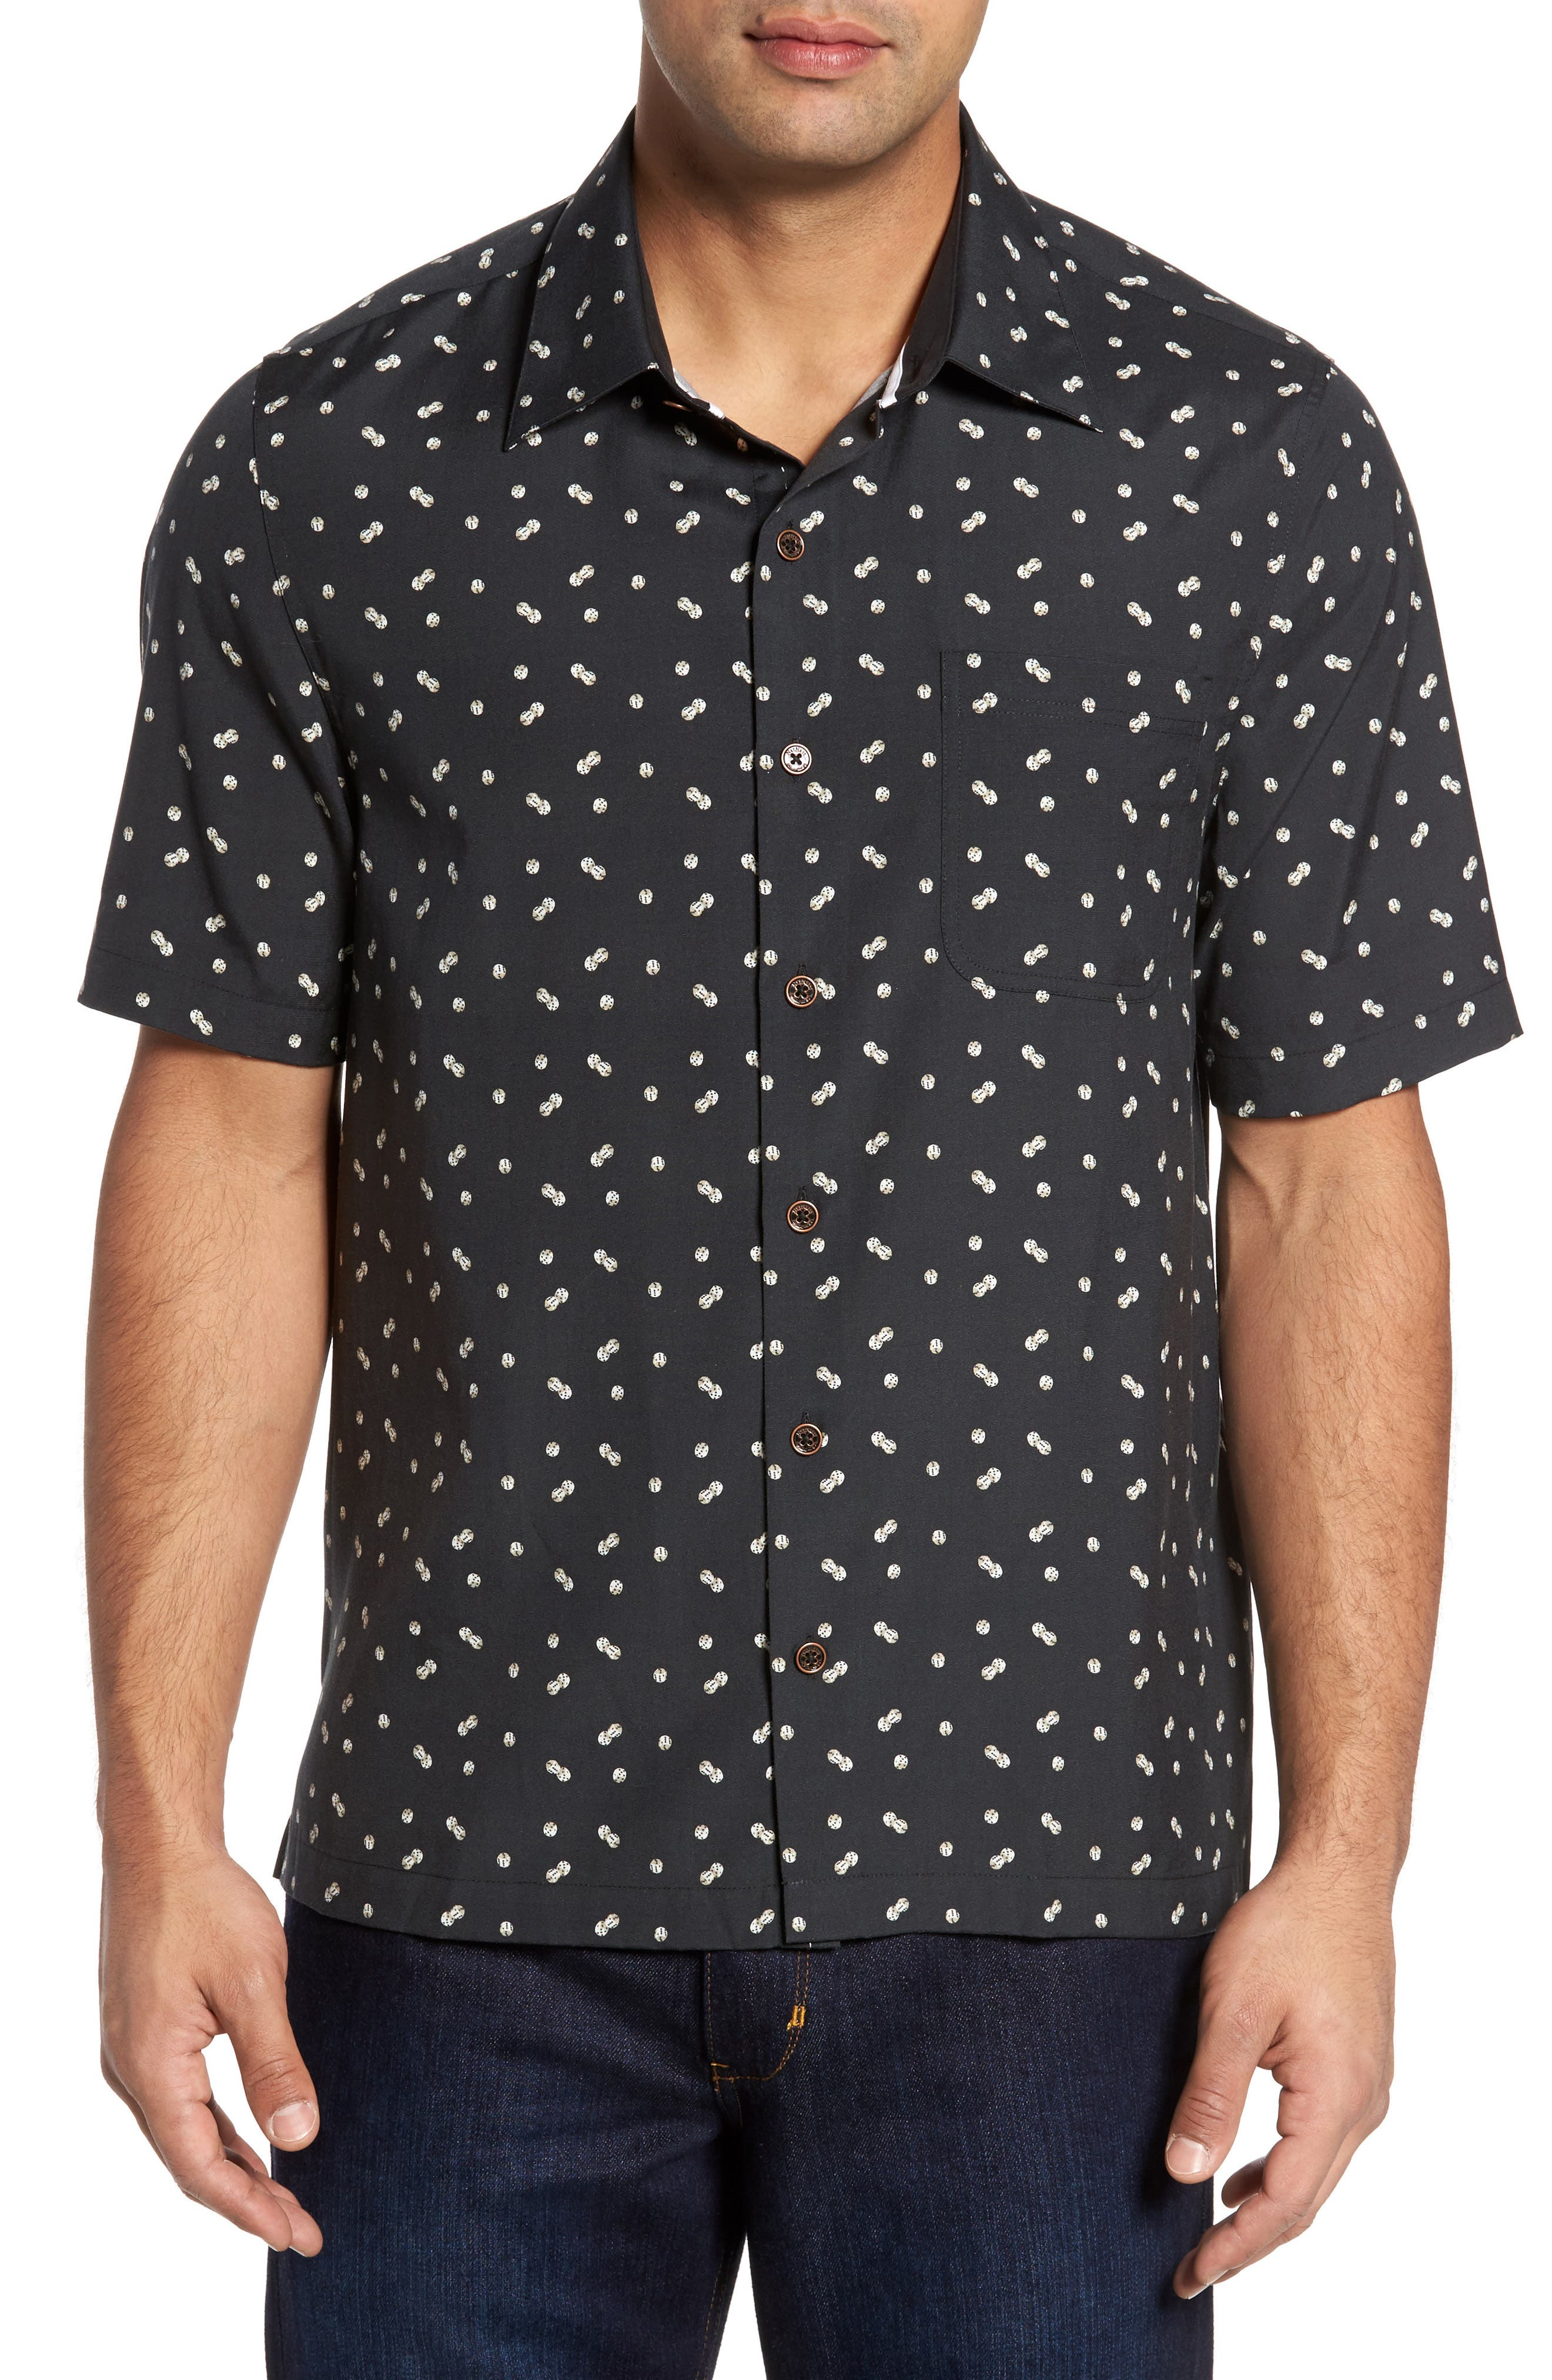 Dice Print Classic Fit Camp Shirt,                             Main thumbnail 1, color,                             Black